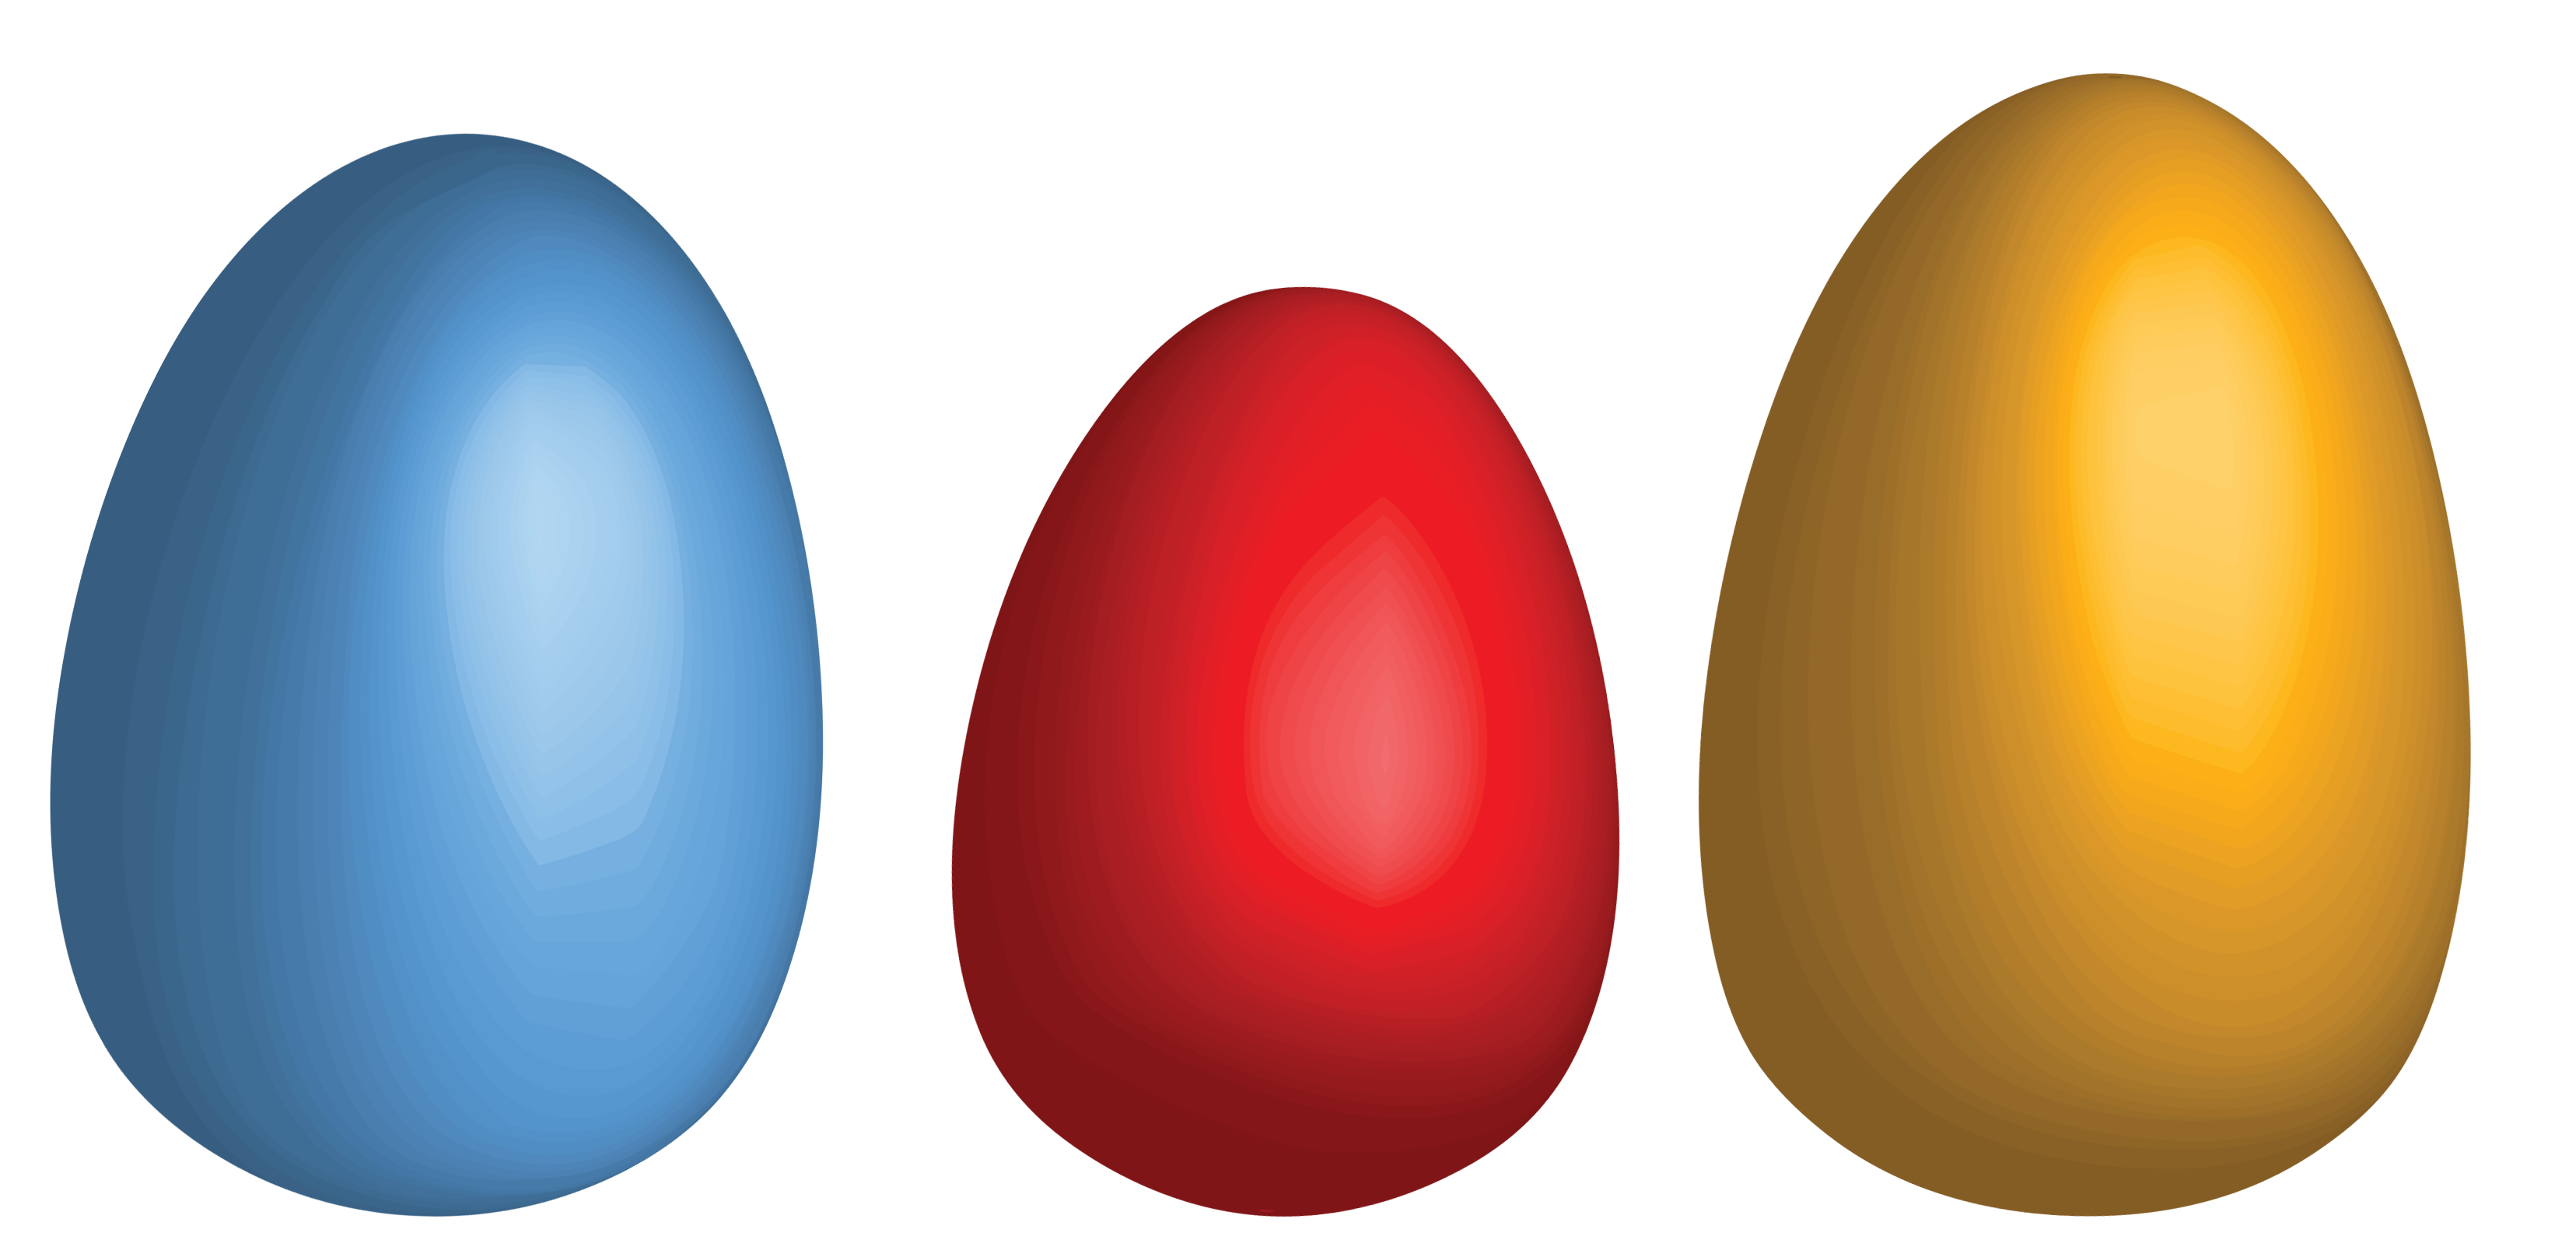 Eggs Png Image Eggs Png Images Image